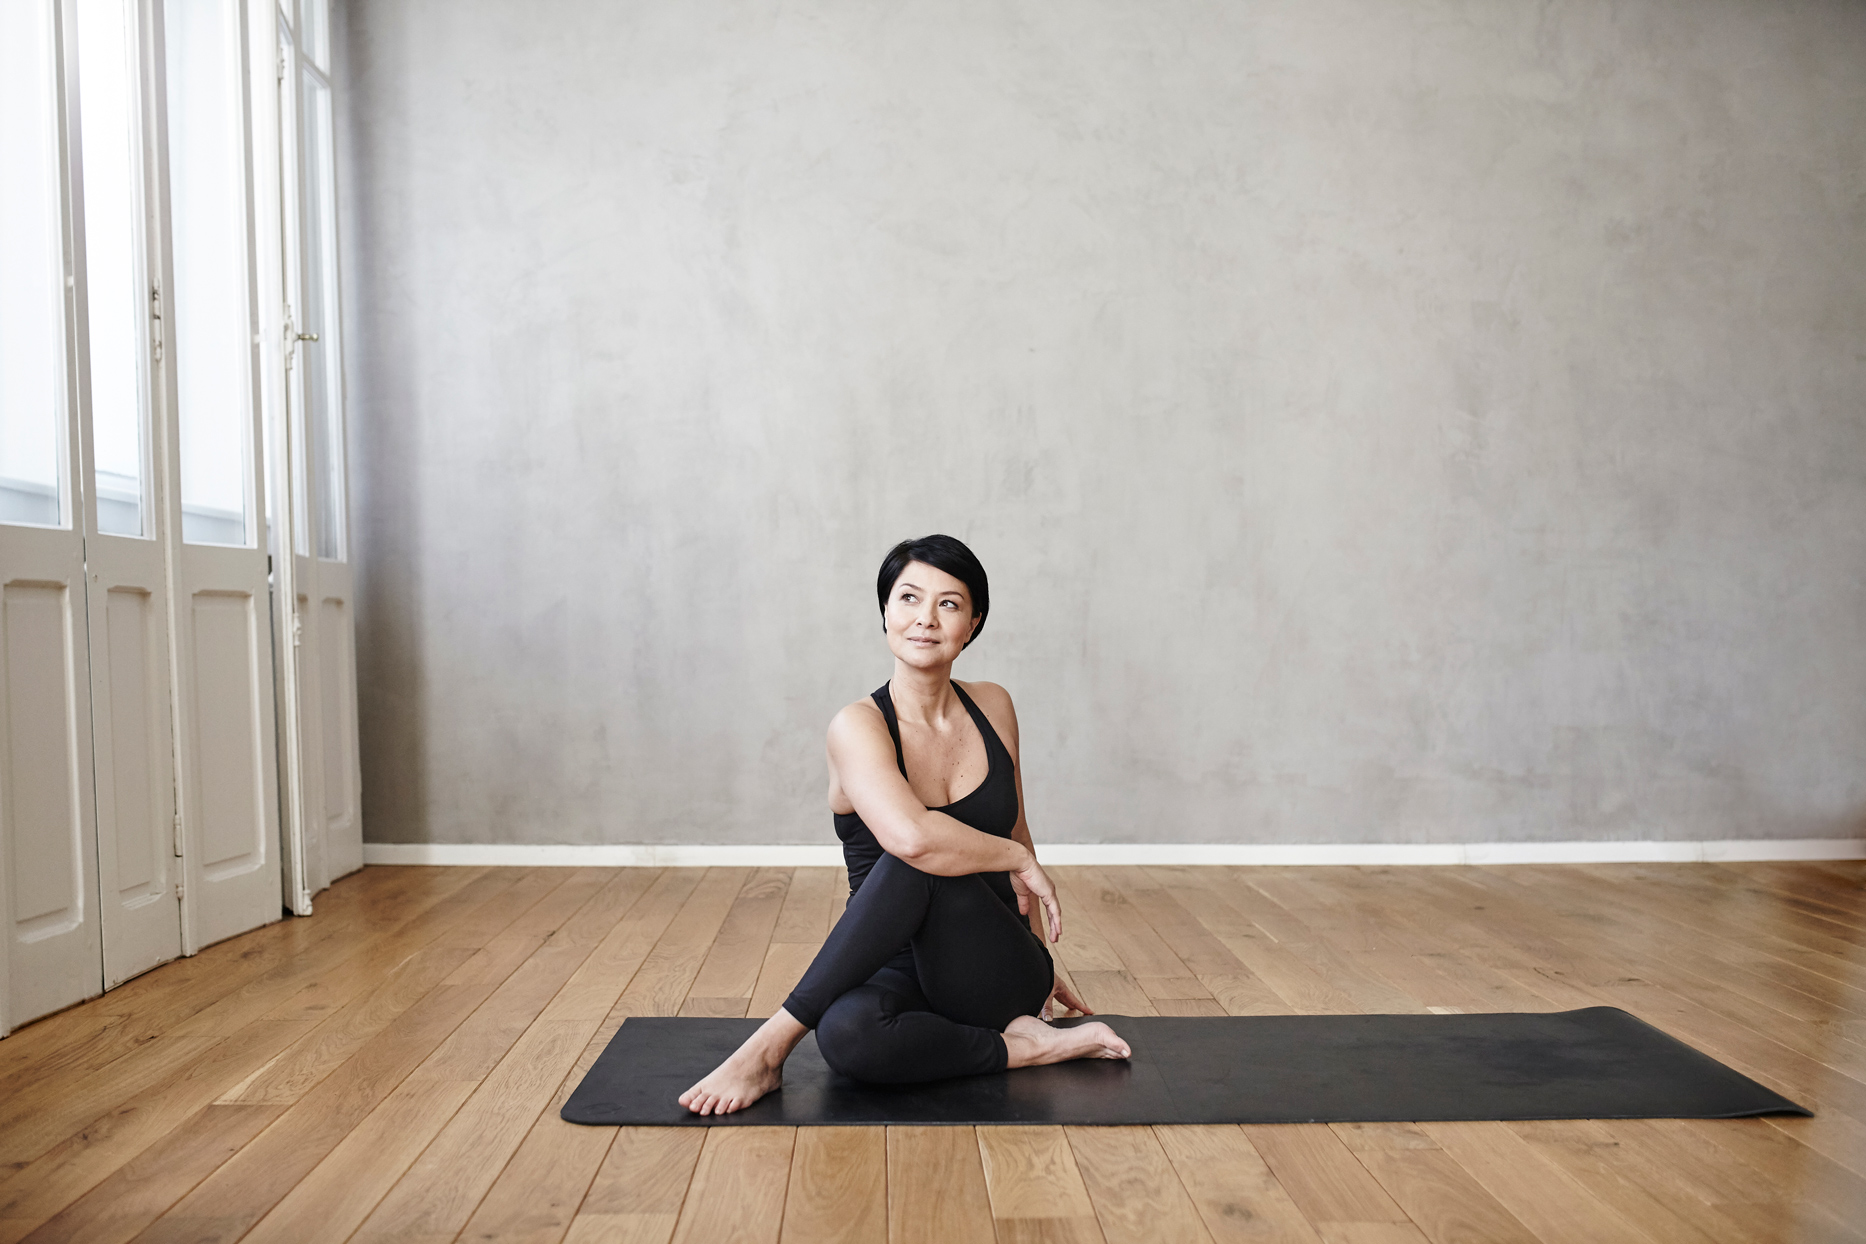 woman in studio room stretching on a yoga mat